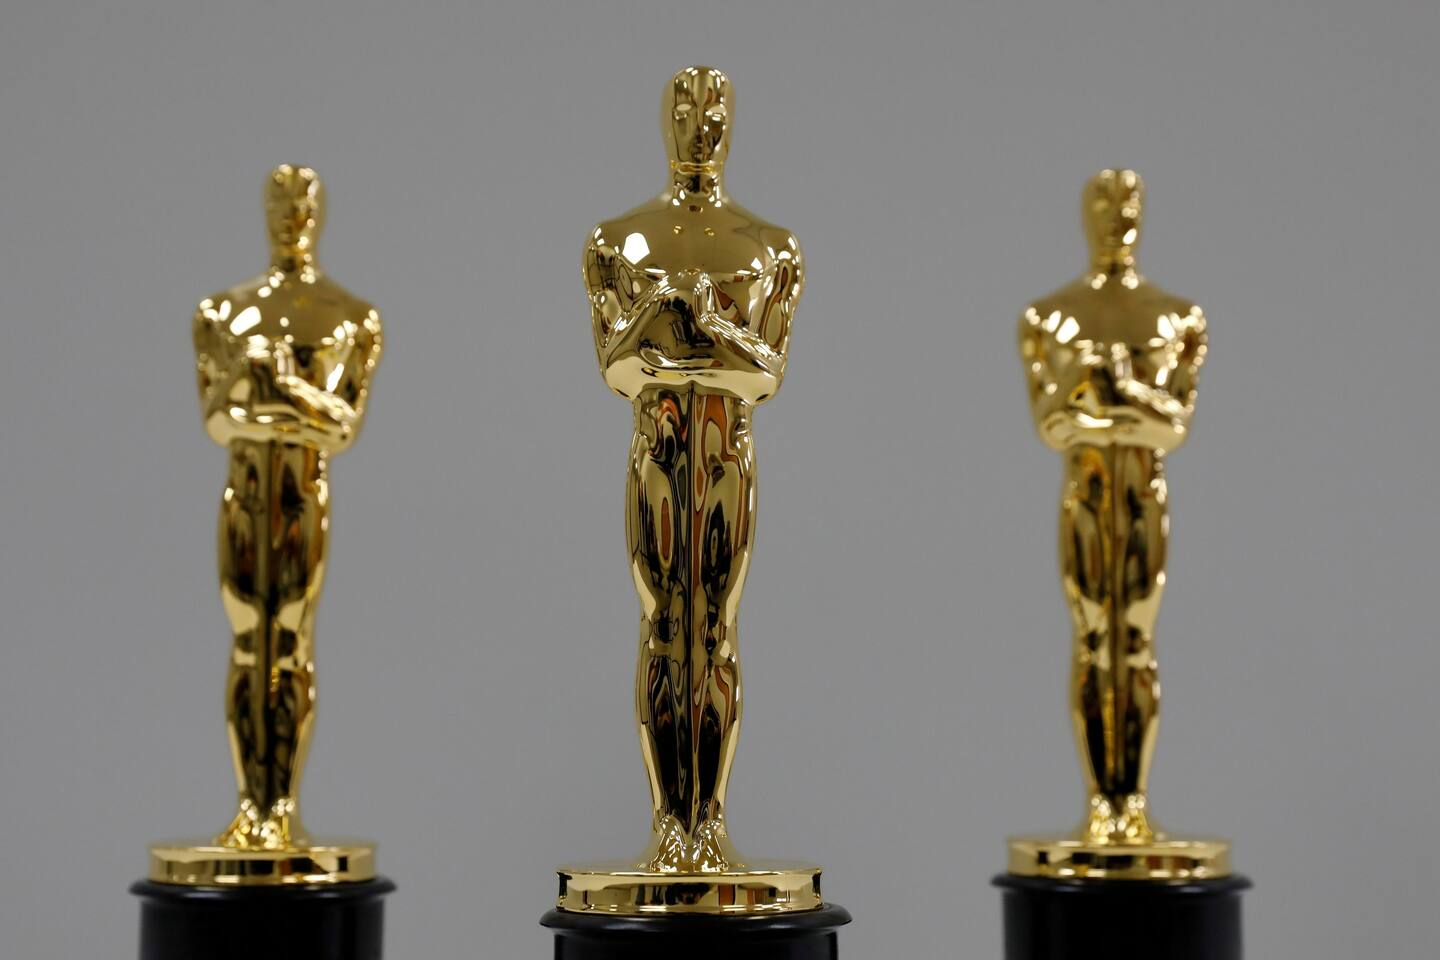 What to watch this weekend: The 93rd Academy Awards on ABC